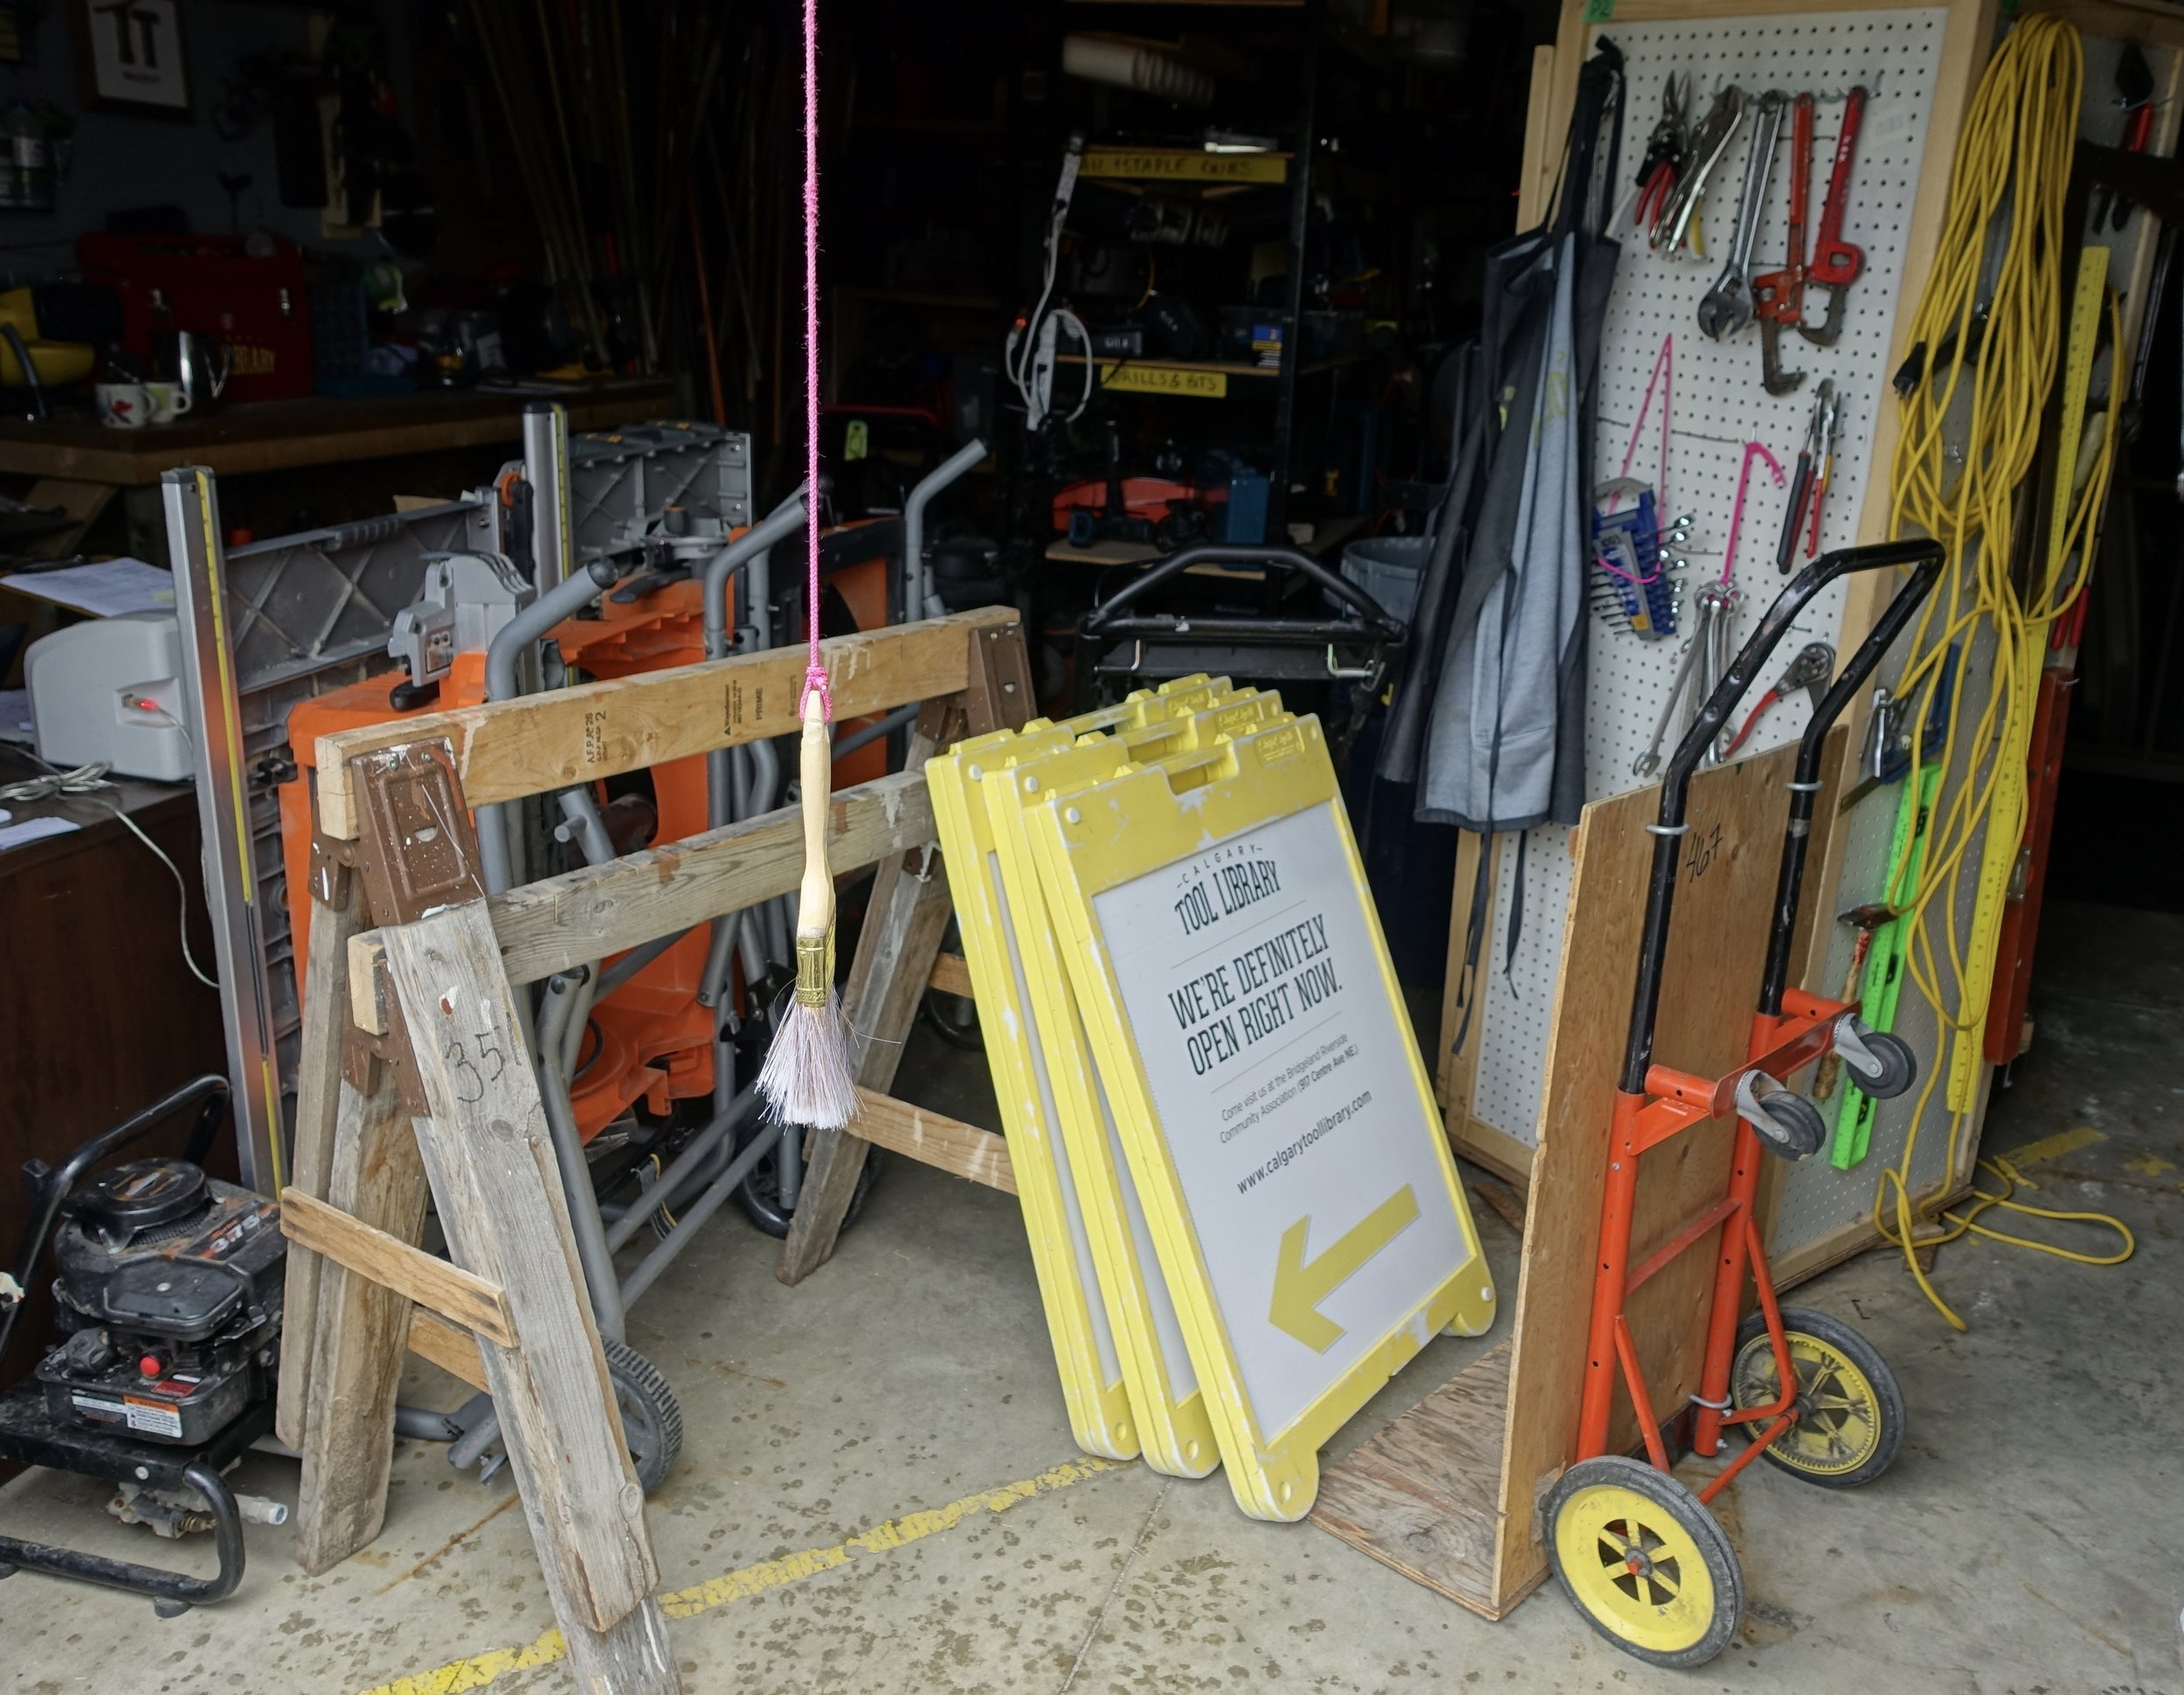 B/R's Tool Library is just one of the many ways residents are working together to create a sharing community.